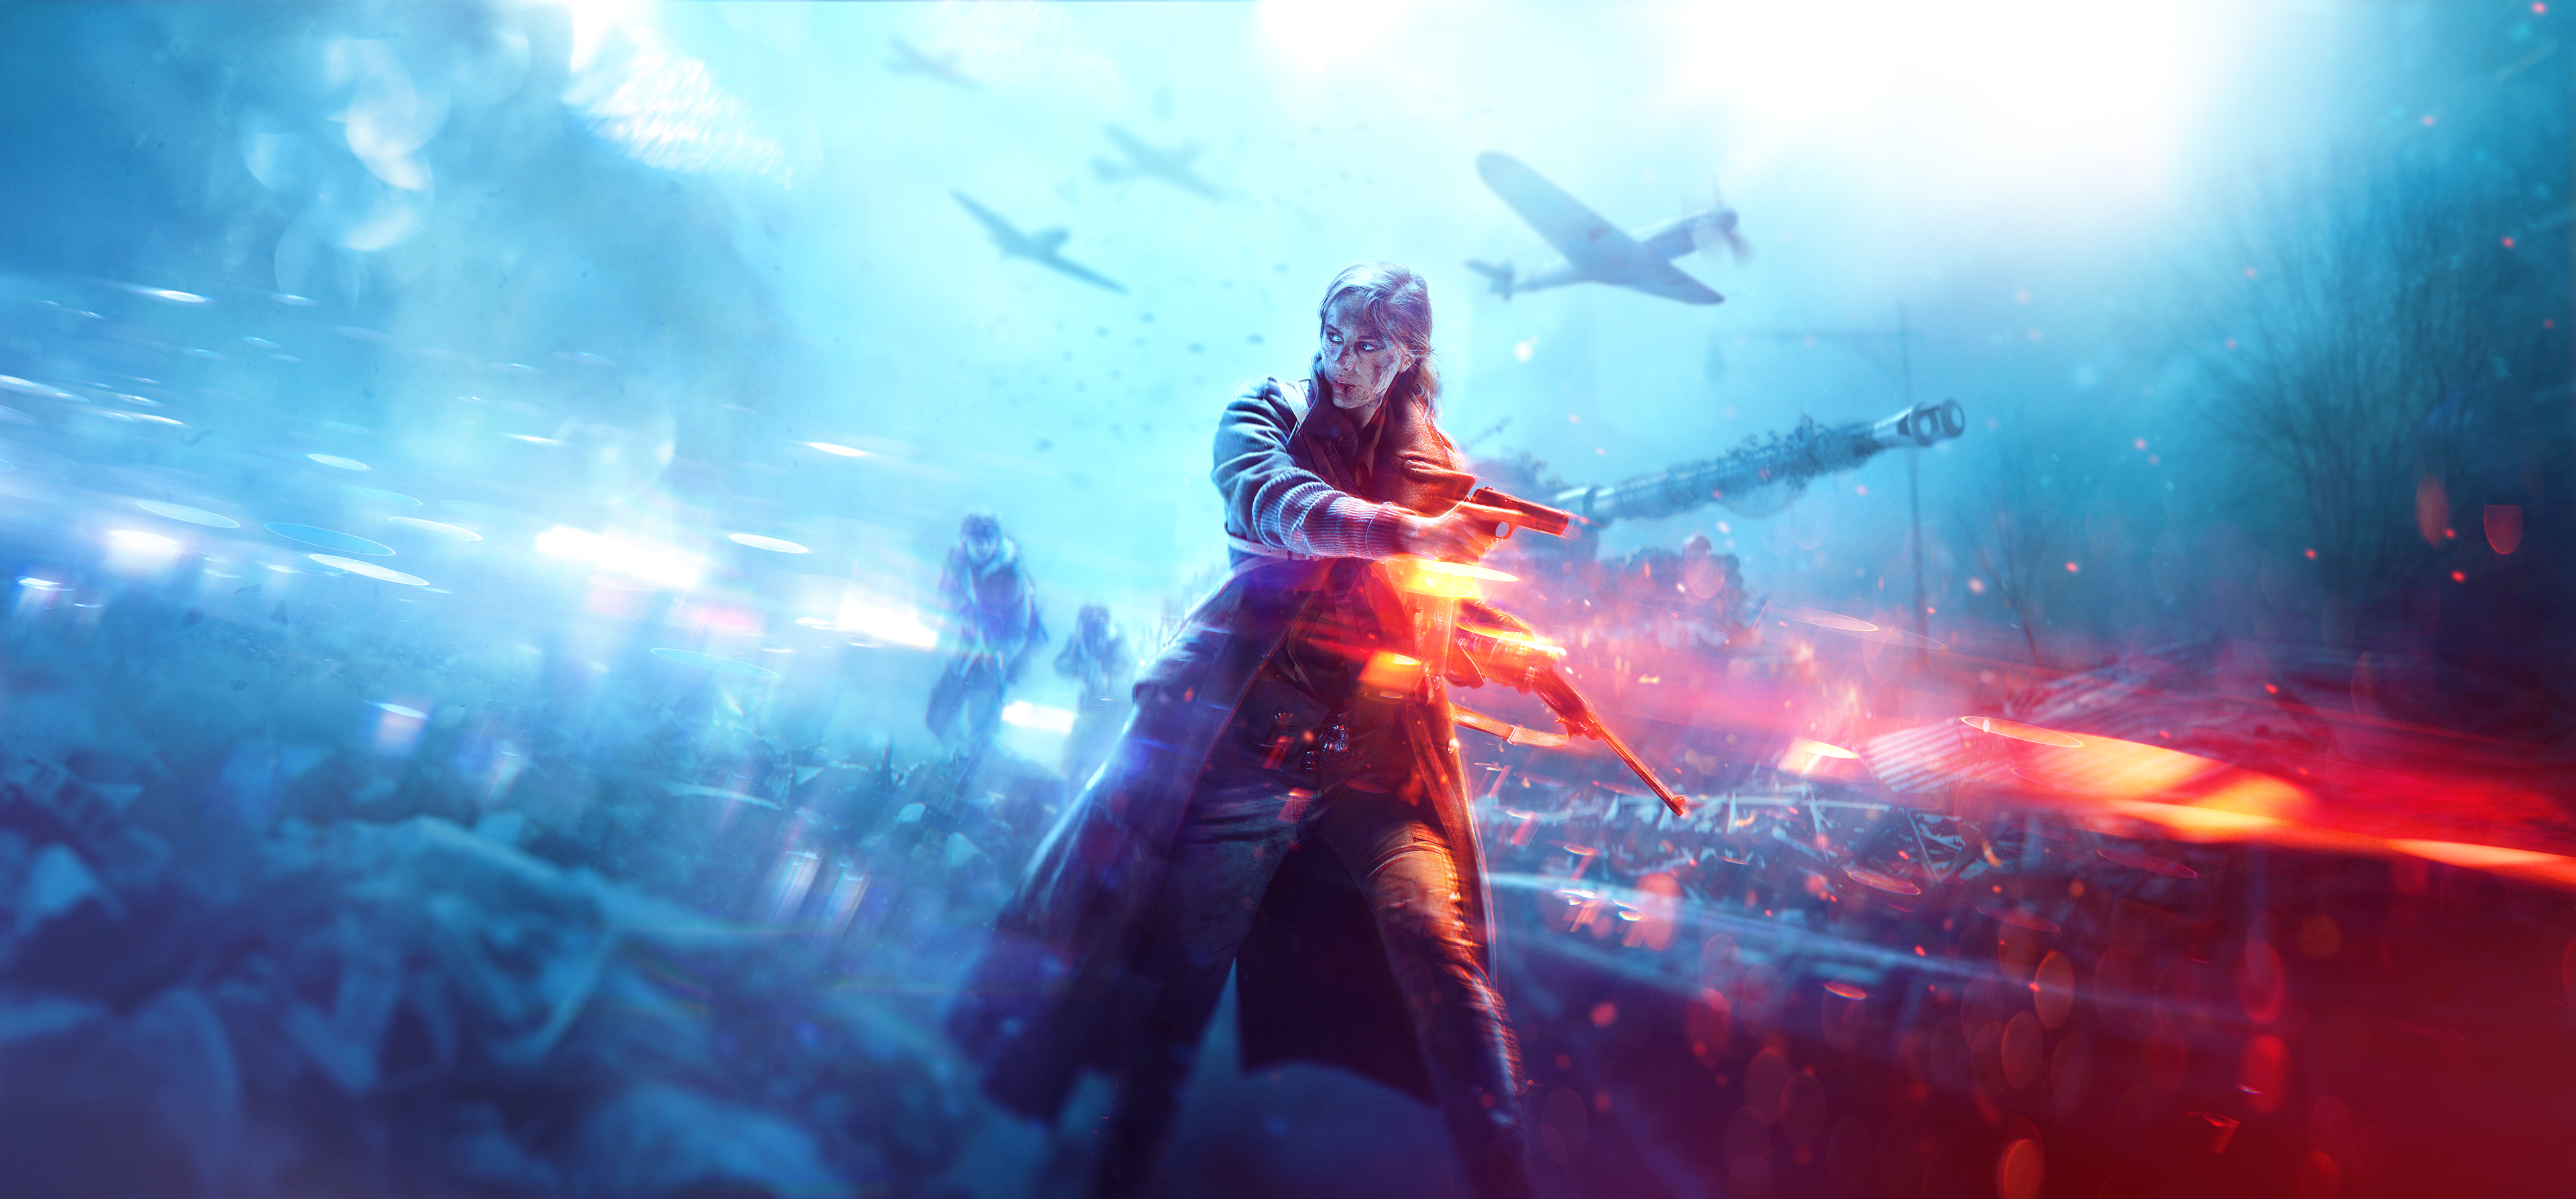 Battlefield V Warrior Girl 4k, HD Games, 4k Wallpapers, Images, Backgrounds, Photos and Pictures